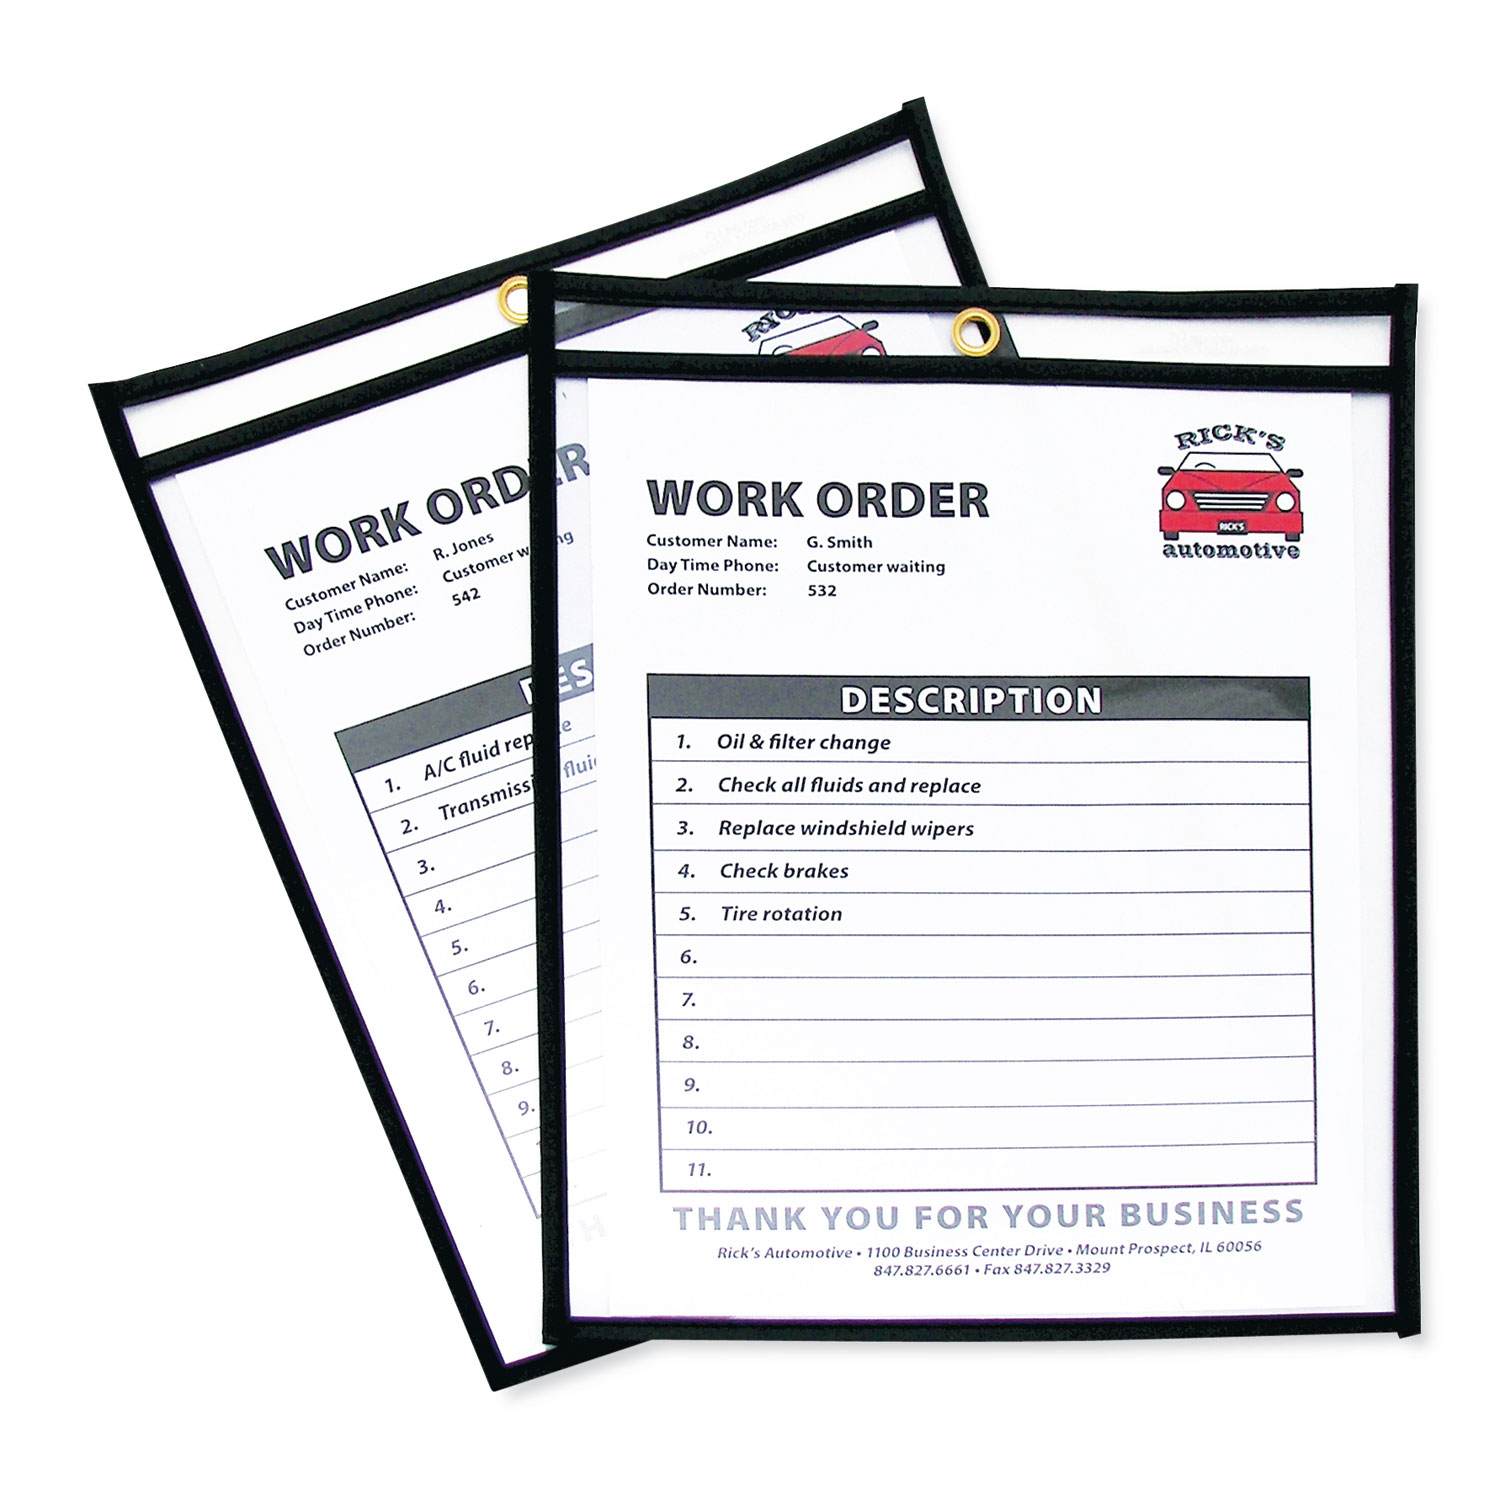 Shop Ticket Holders, Stitched, Both Sides Clear, 50 Sheets, 8 1/2 x 11, 25/Box